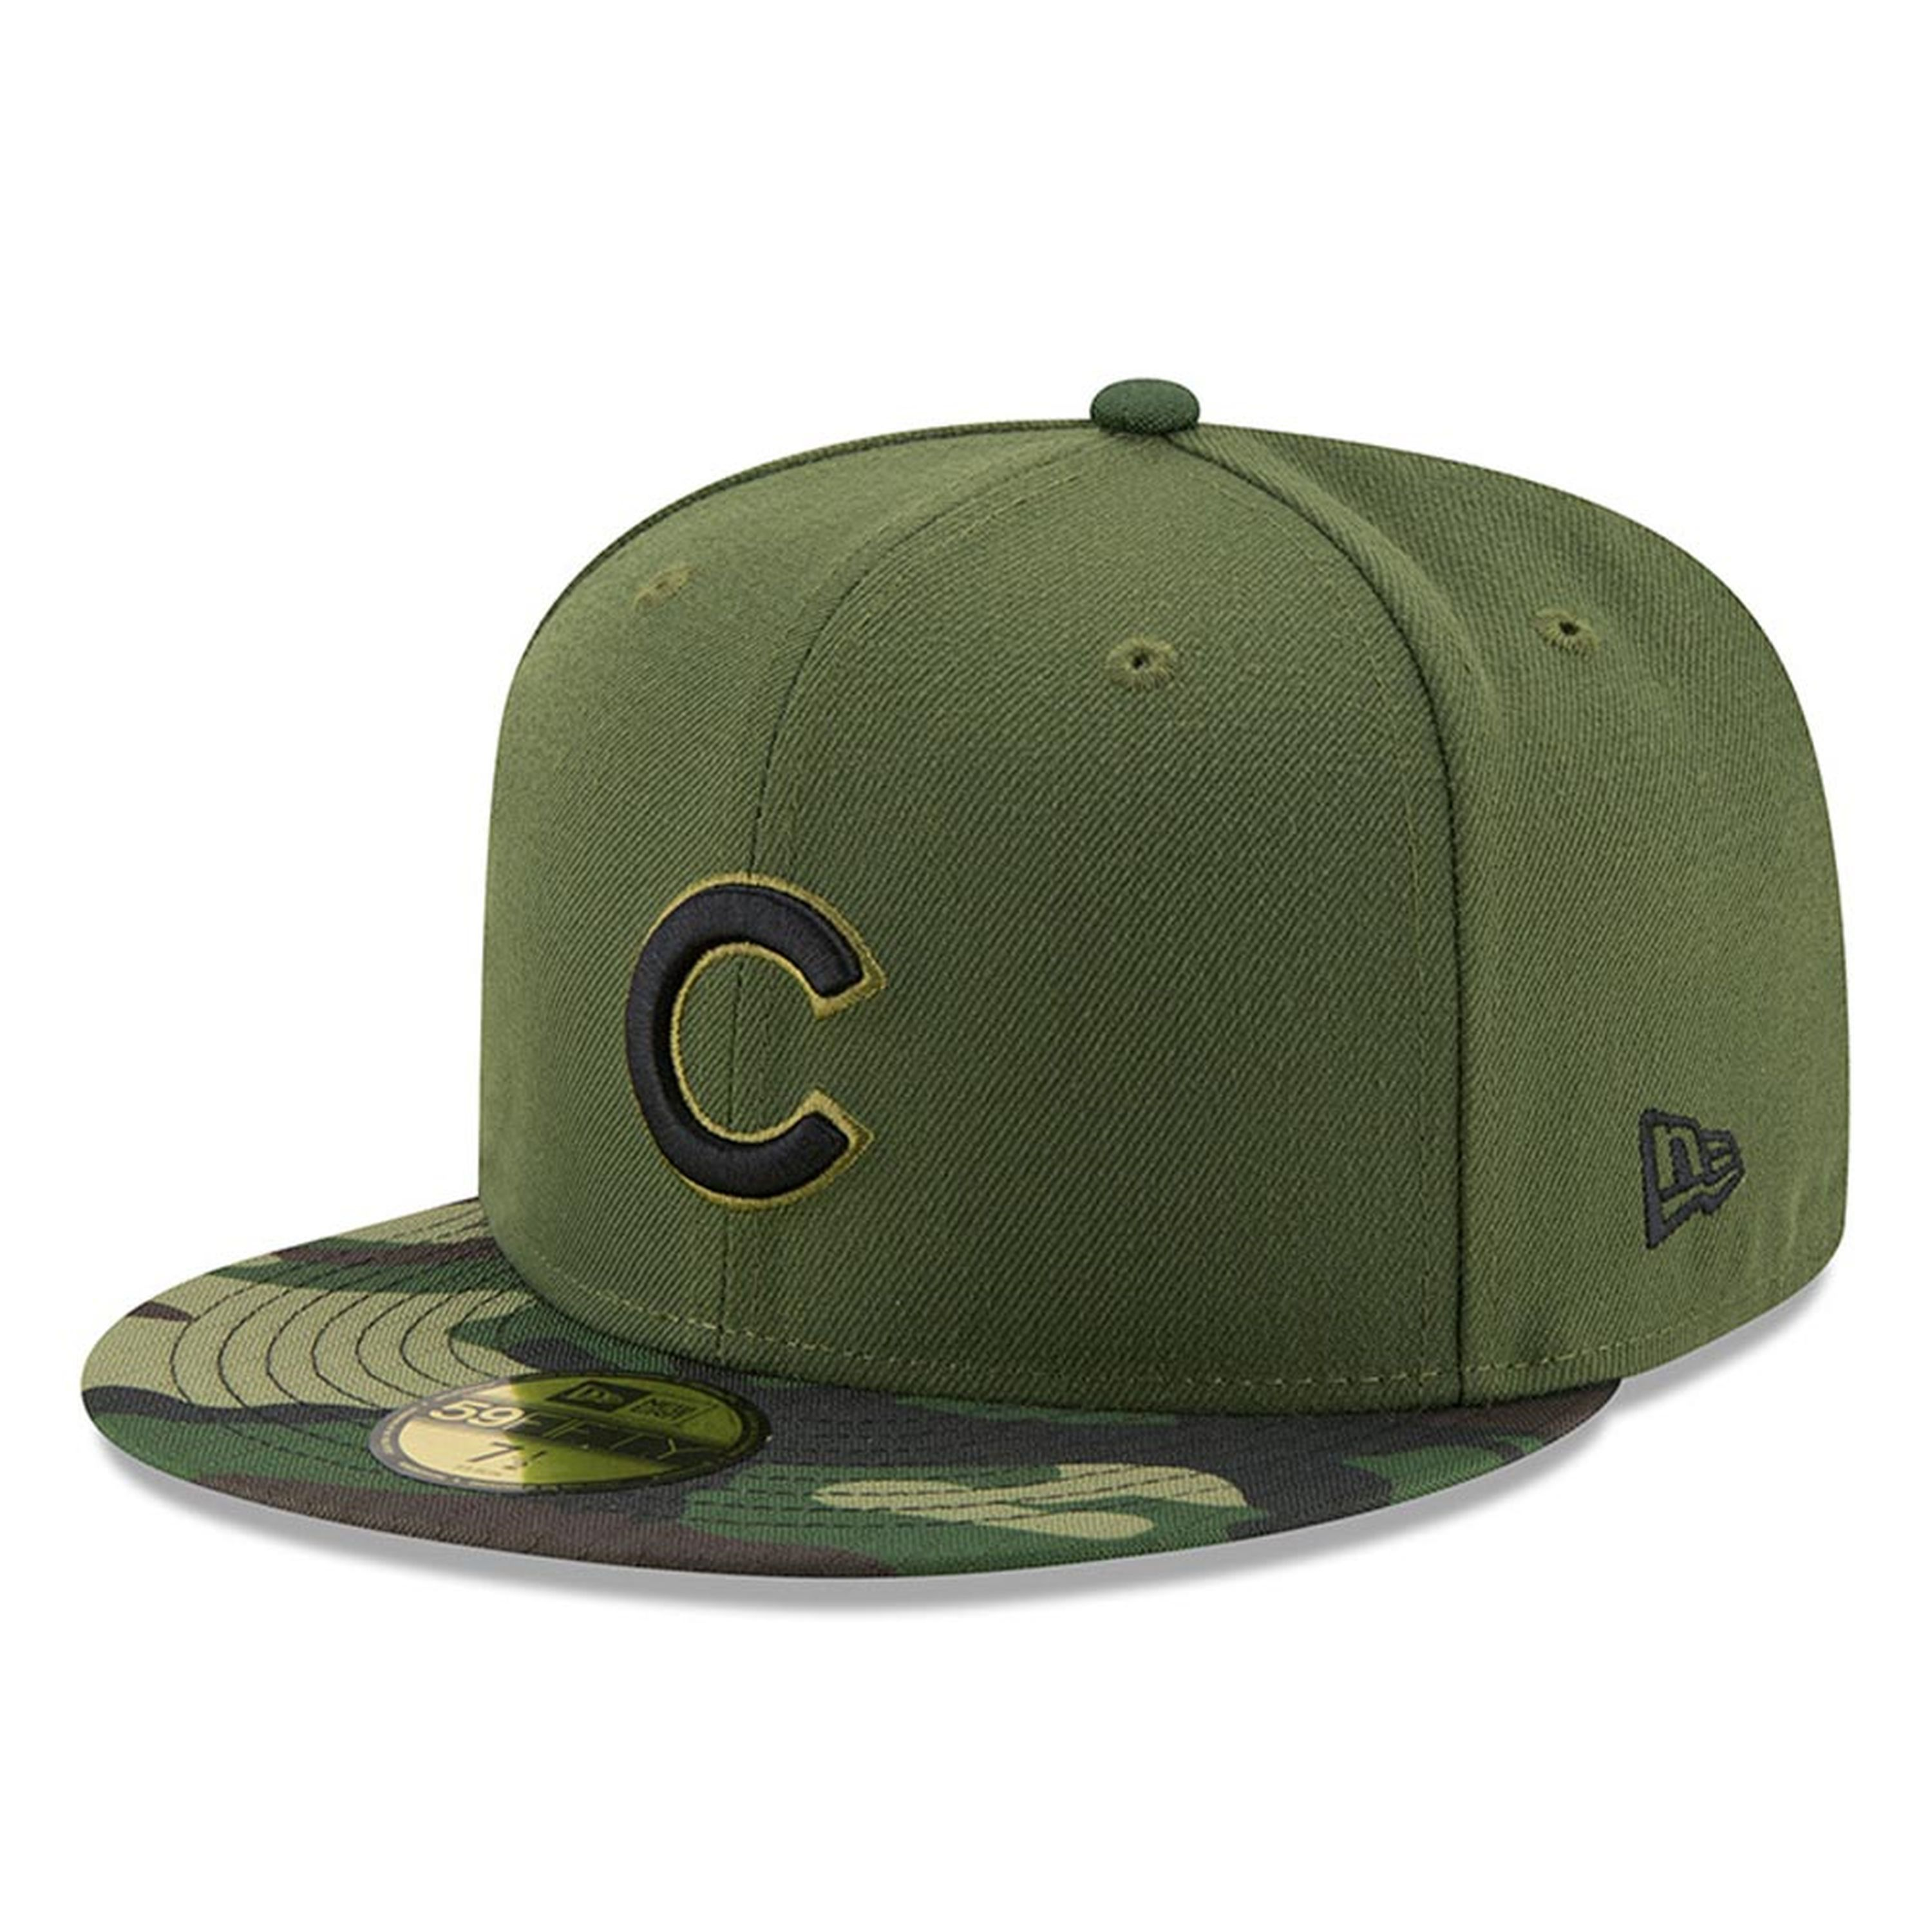 032a93ea9 Men's Chicago Cubs New Era Green 2017 Memorial Day 59FIFTY Fitted ...